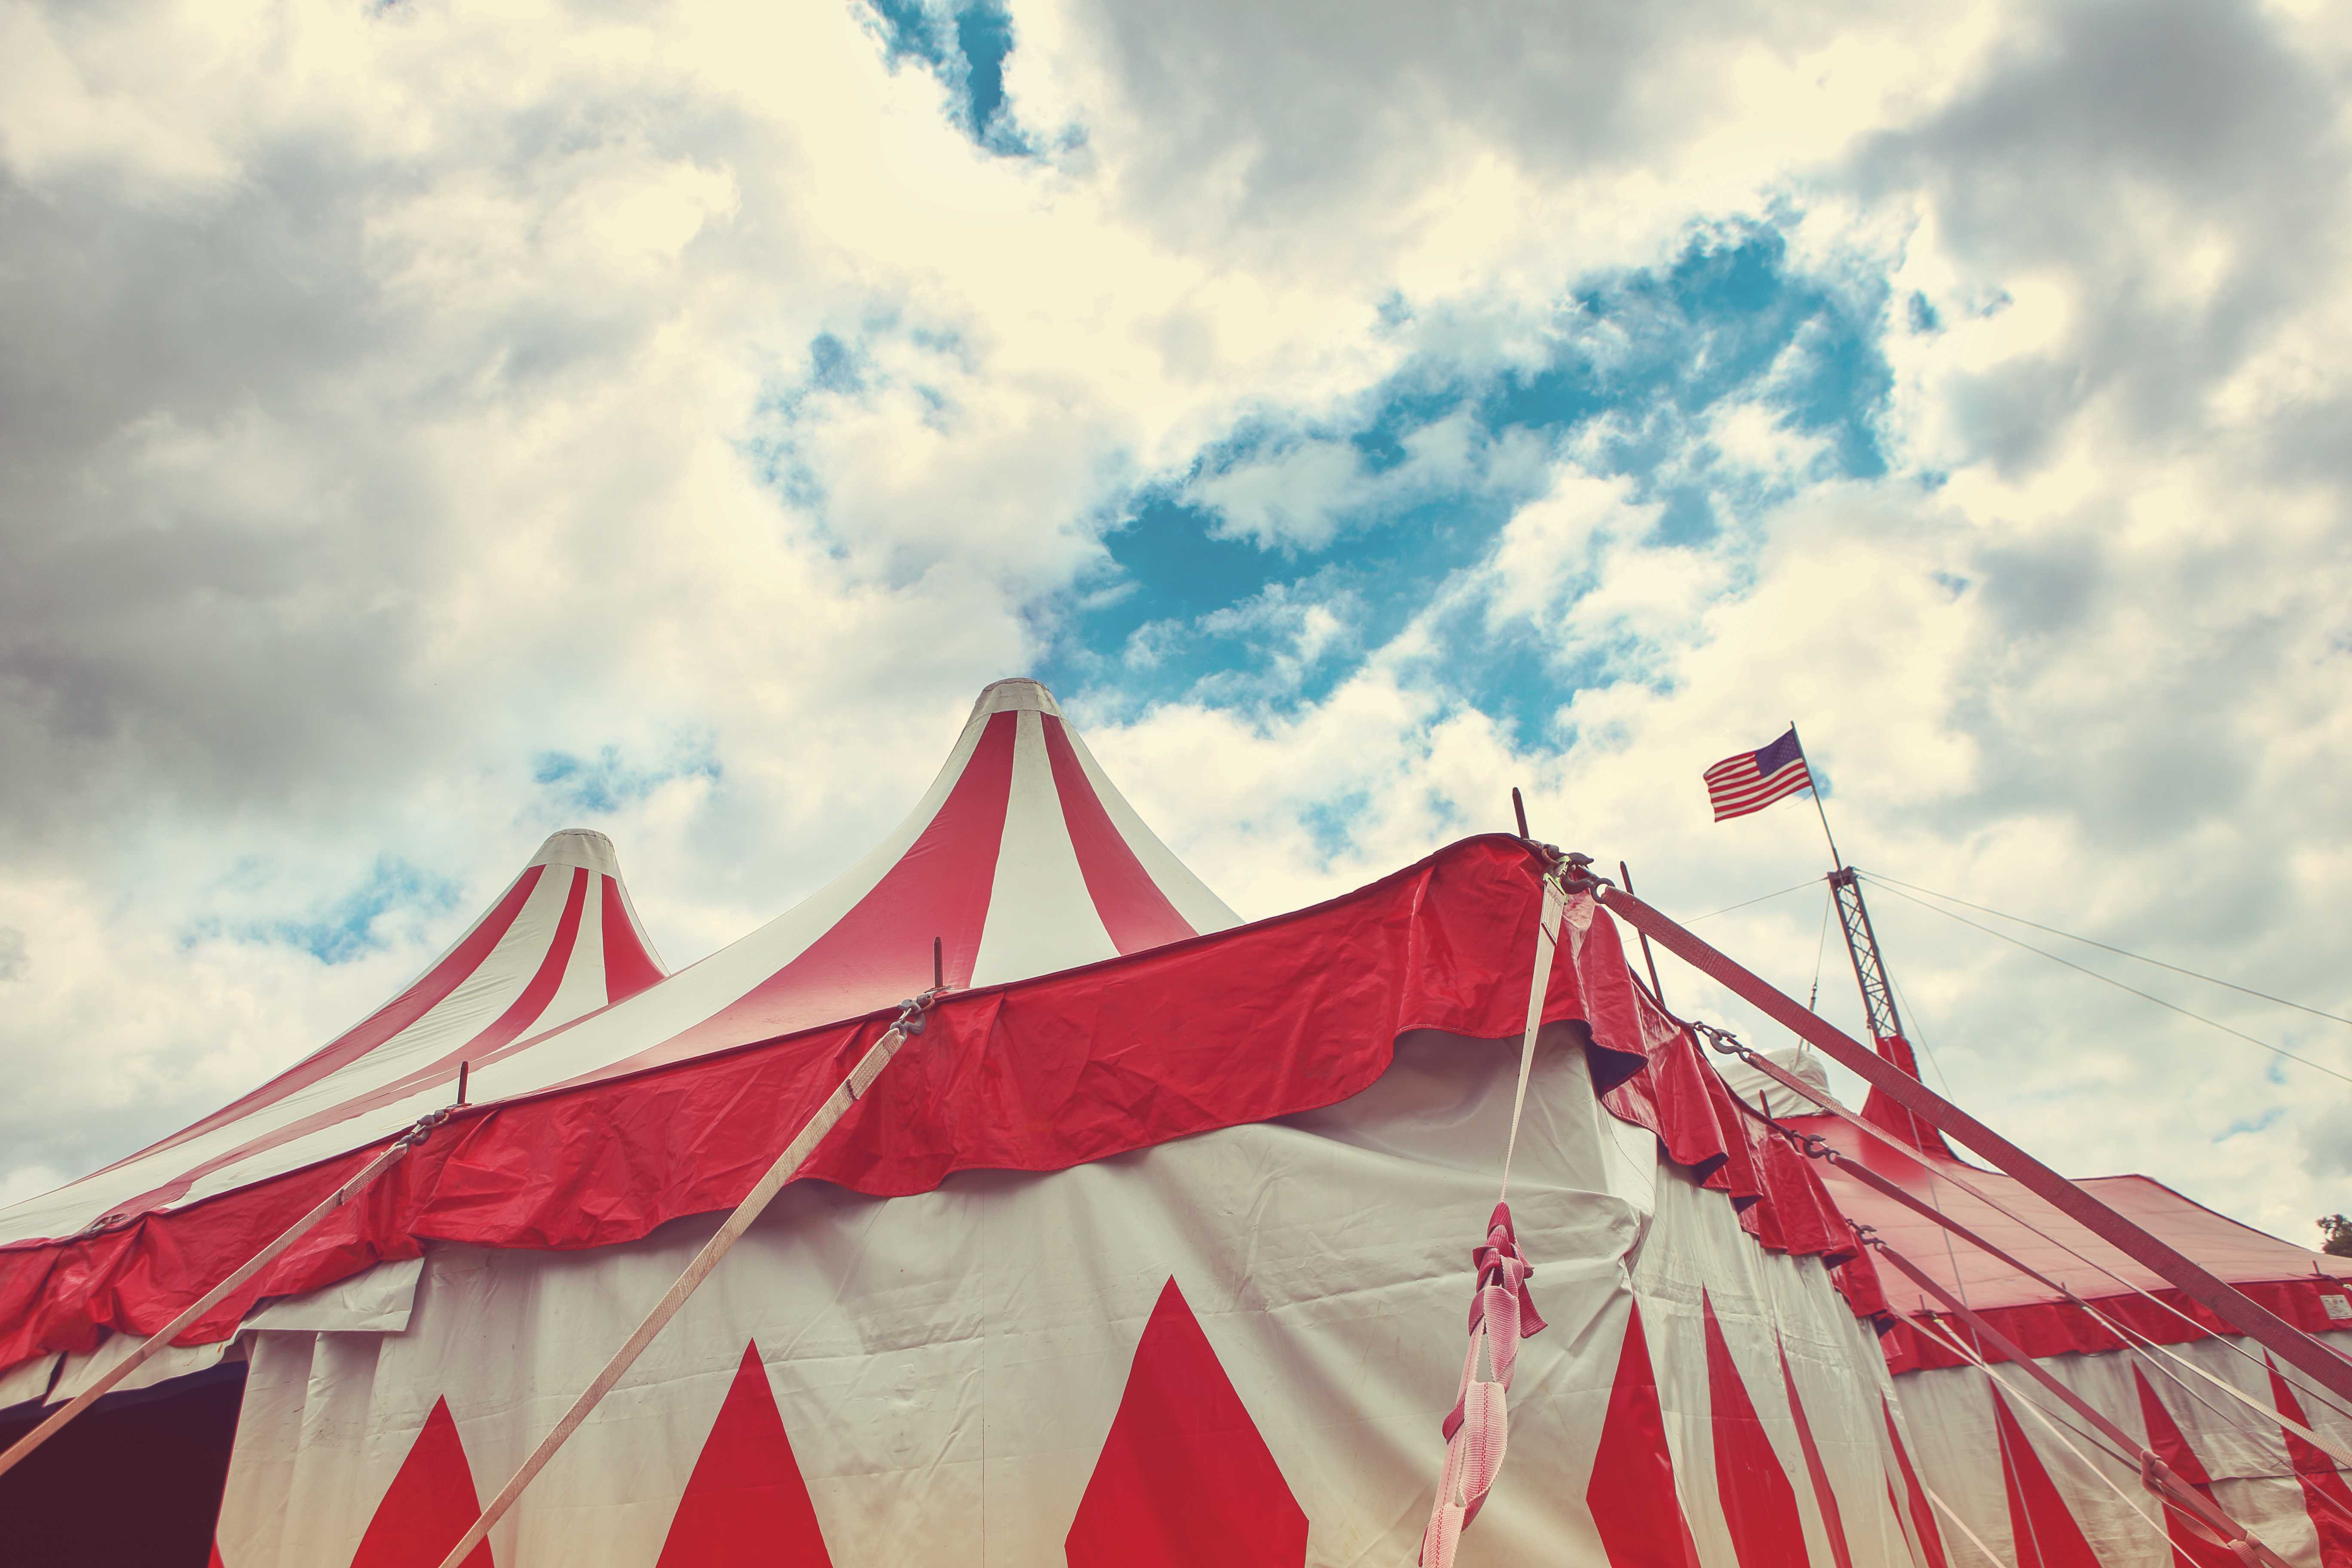 Circus fined for fatal tent collapse